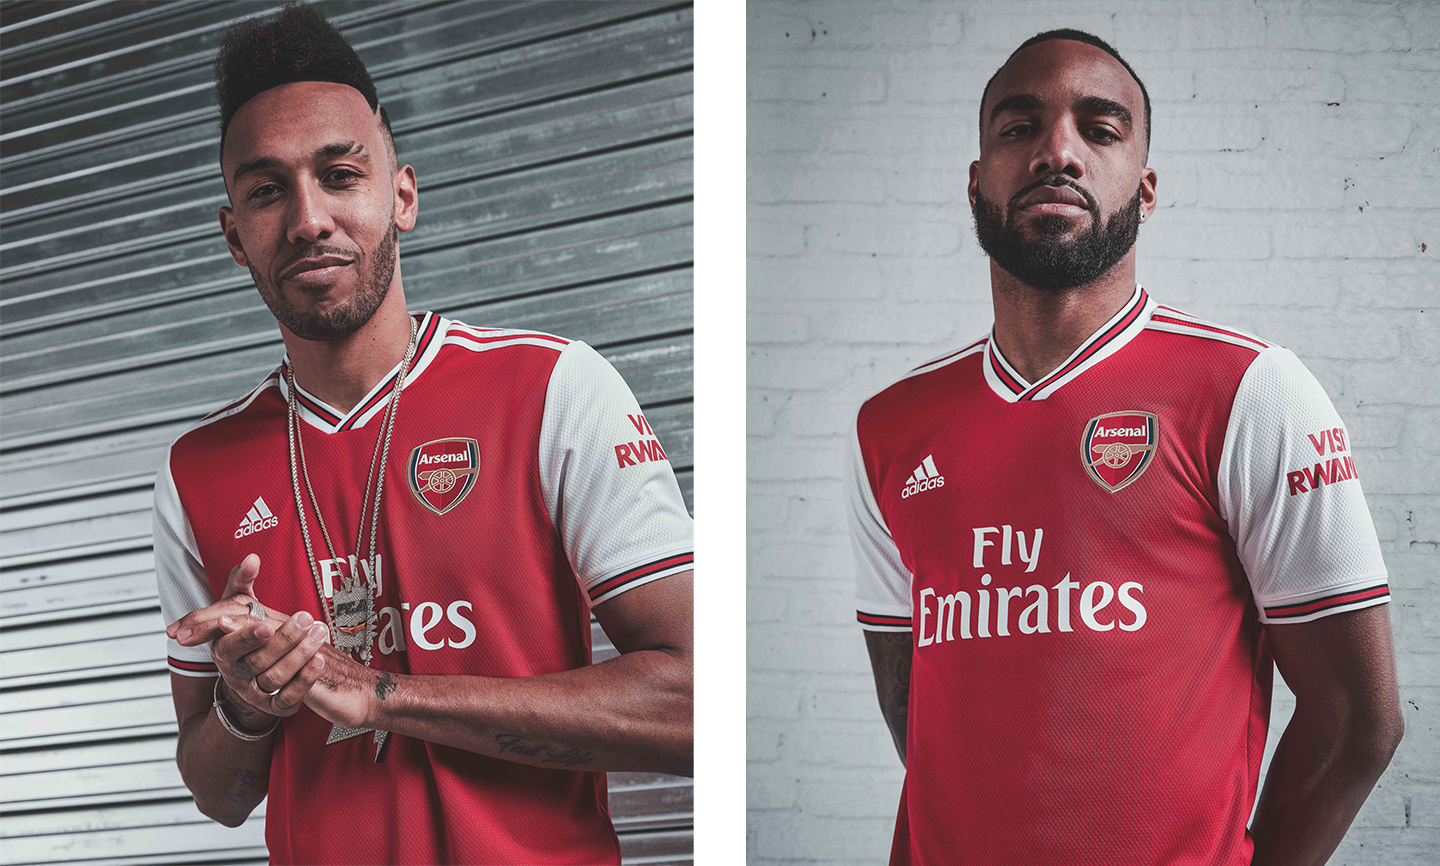 New Arsenal home kit